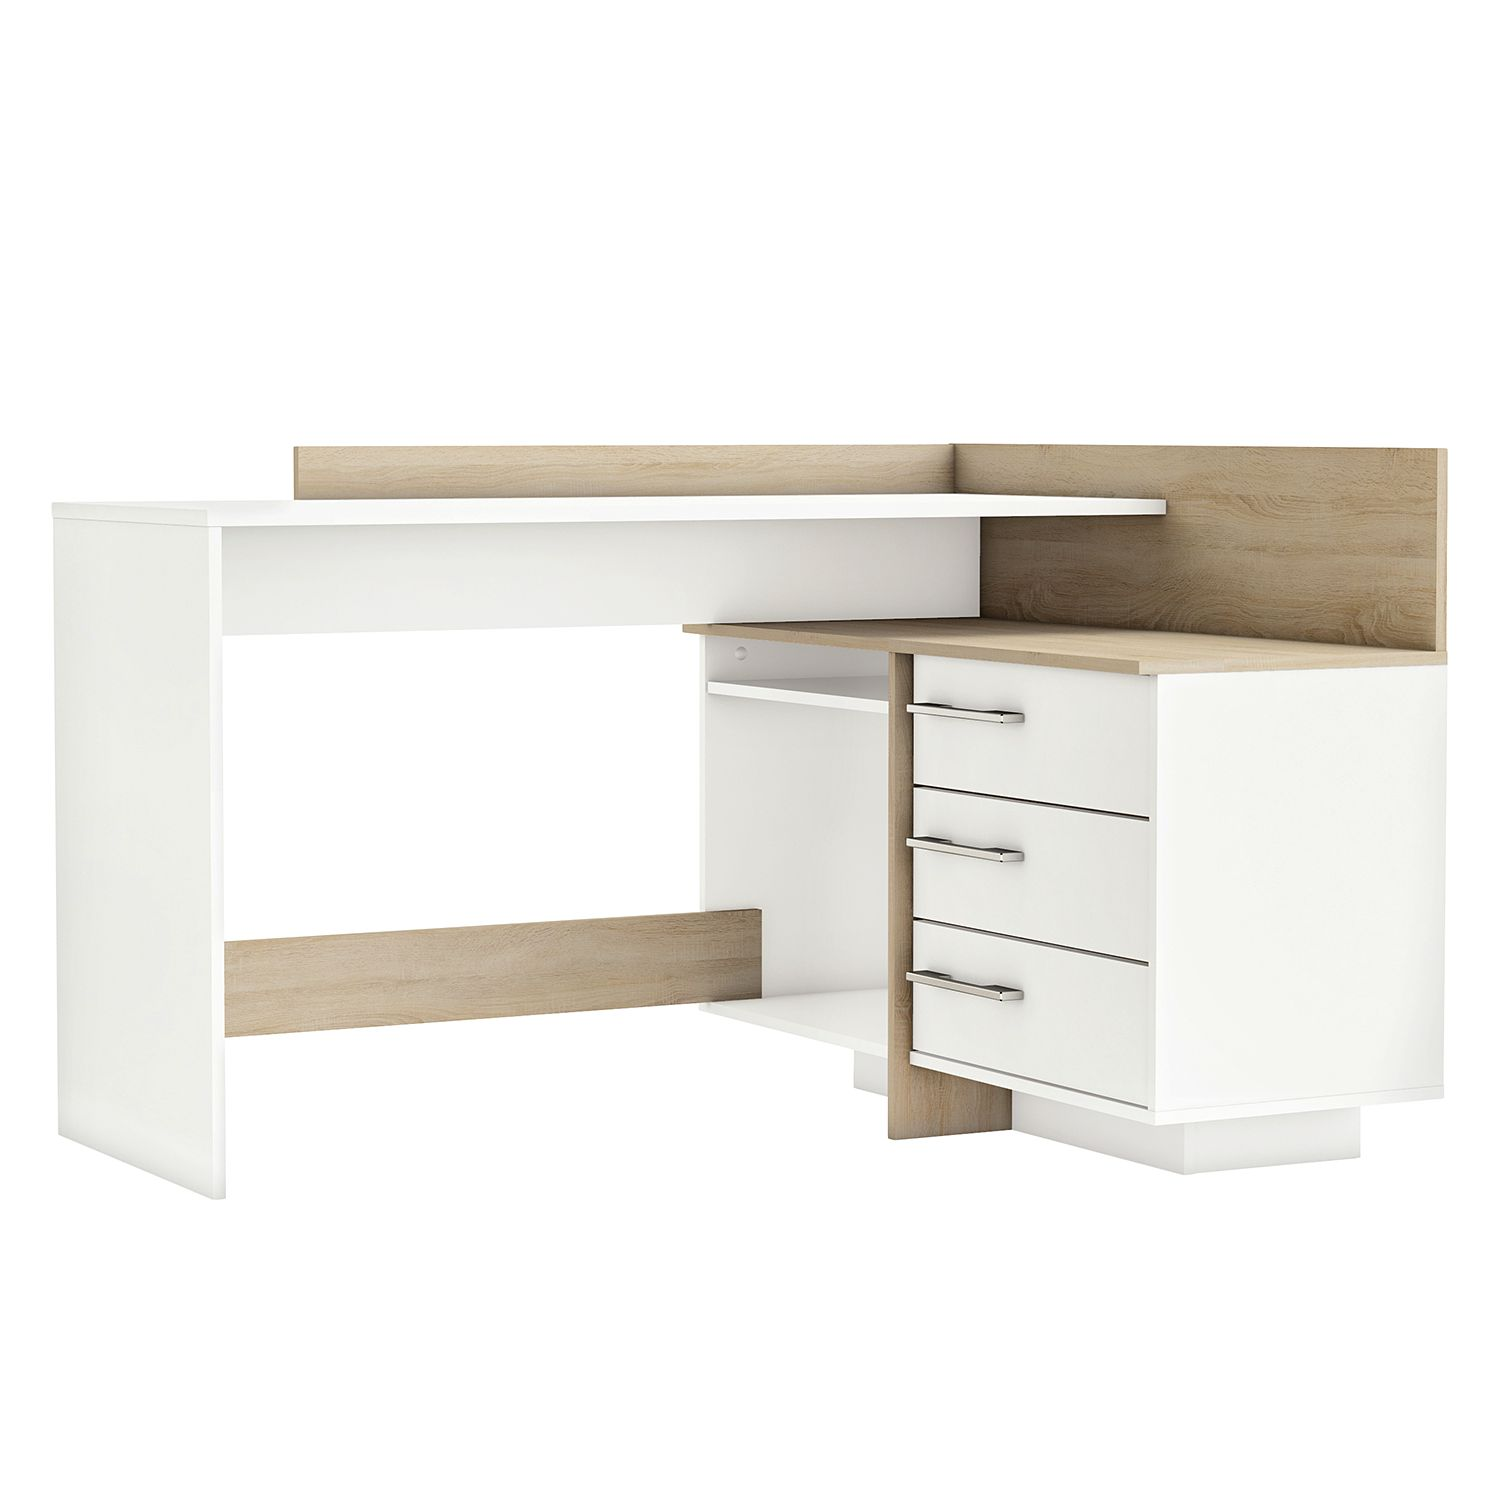 eckschreibtisch weiss preisvergleich die besten angebote online kaufen. Black Bedroom Furniture Sets. Home Design Ideas